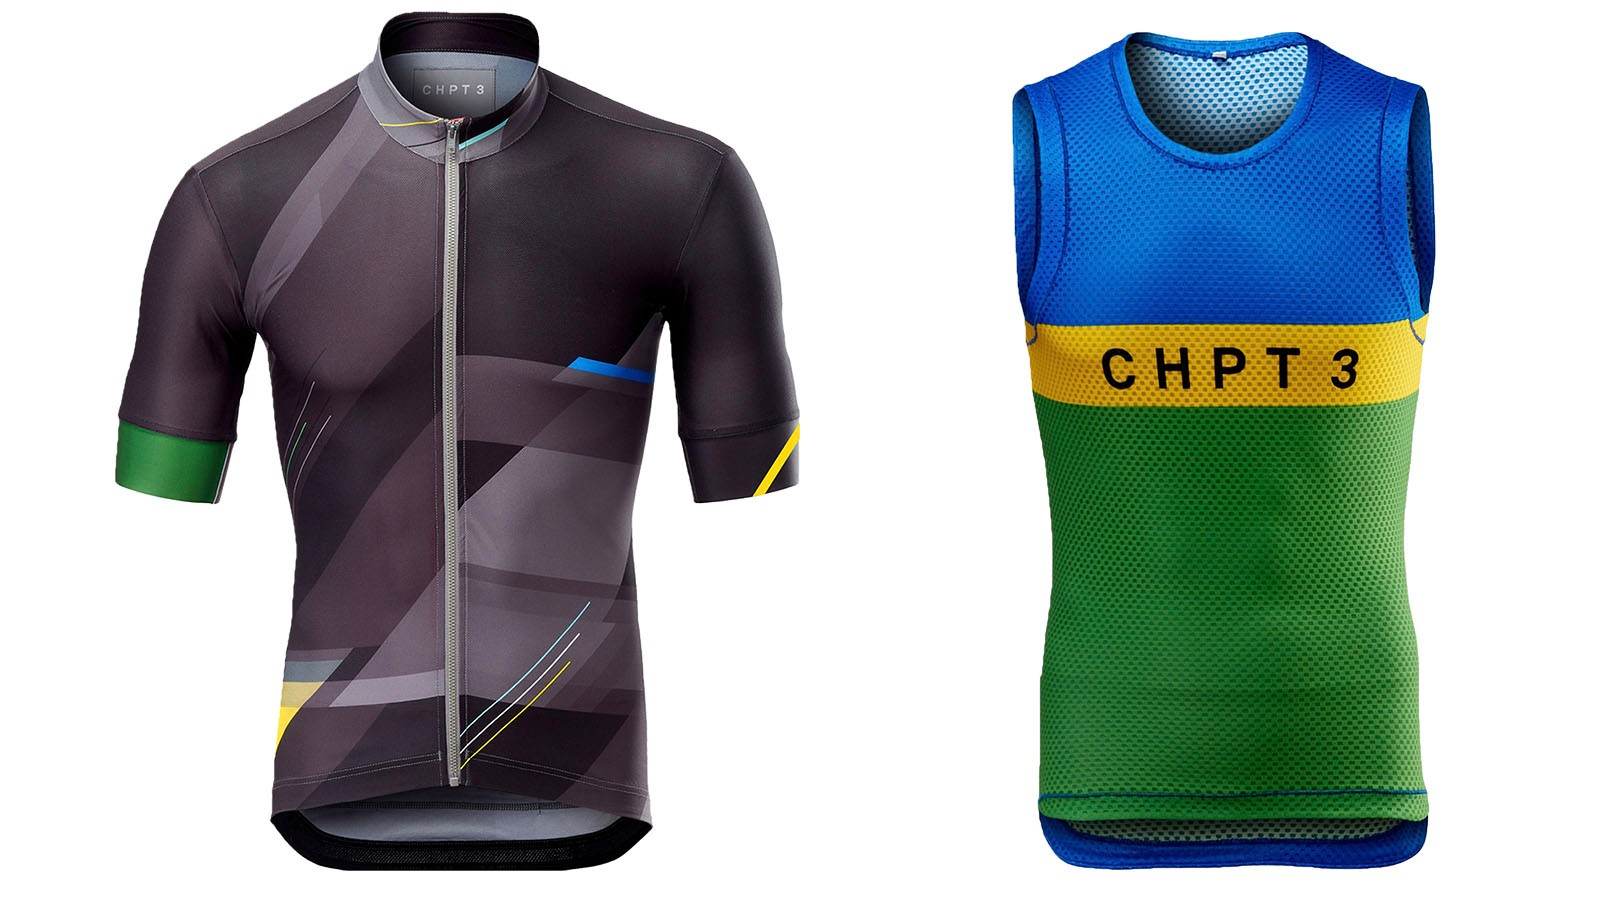 The jersey and baselayer contrast to symbolise the two distinct halves of the race